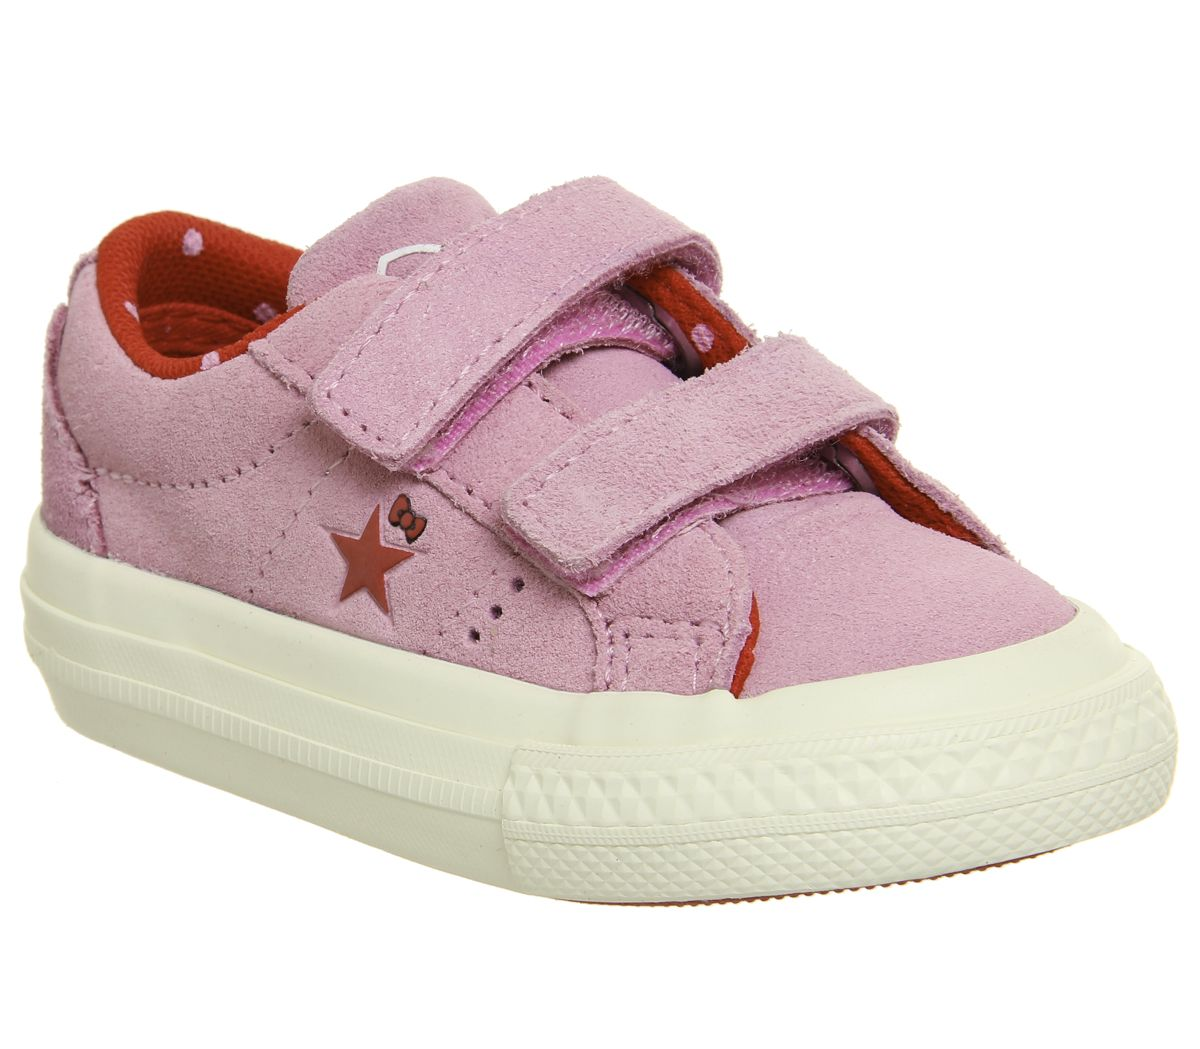 save off 63e44 3af83 Converse One Star Infant Trainers Pink White Hello Kitty - Unisex